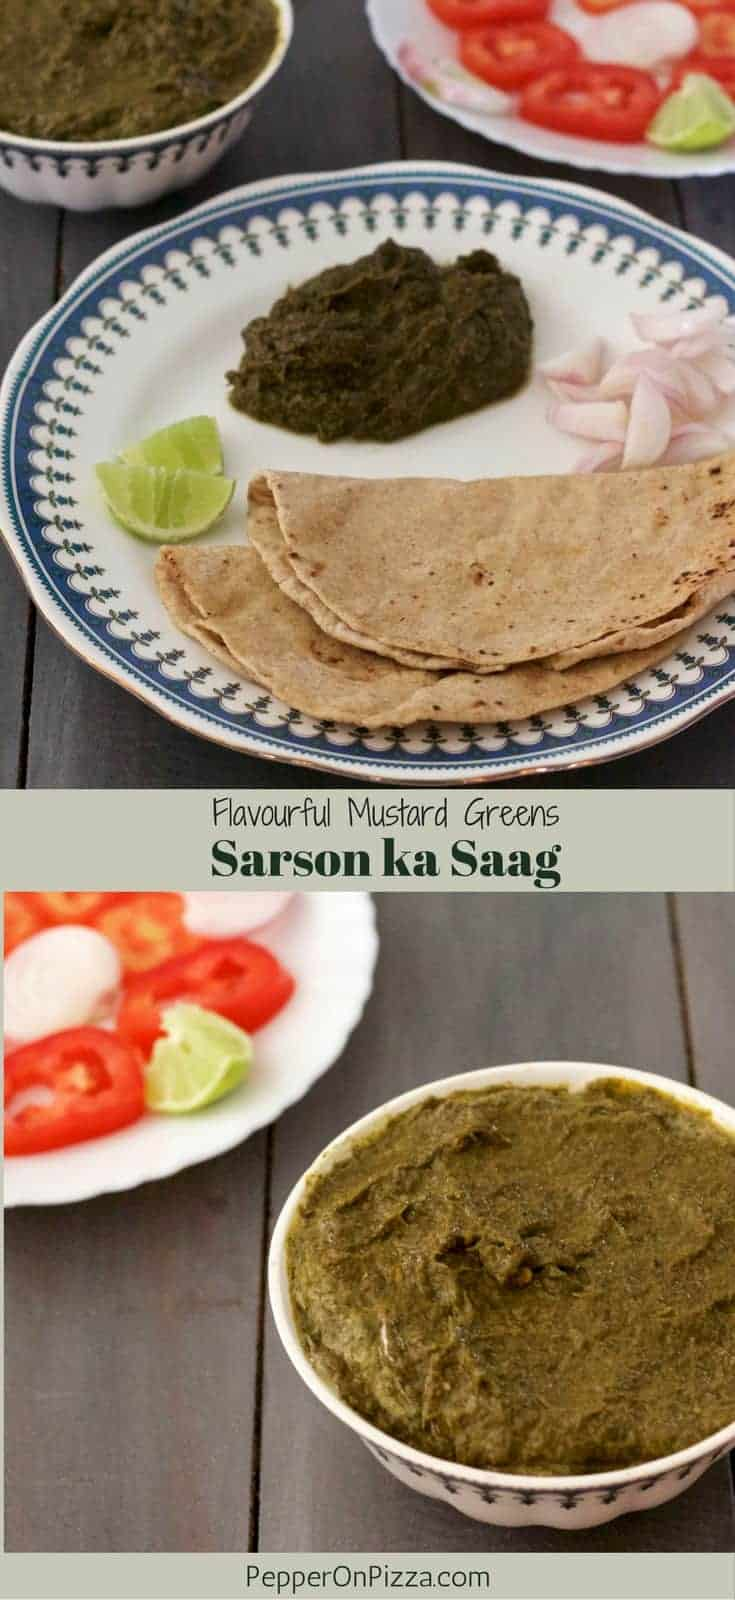 Nutritious cancer fighting Sarson ka Saag, the ultimate winter classic from Punjab. Delicious Mustard greens curry served with Makki Roti